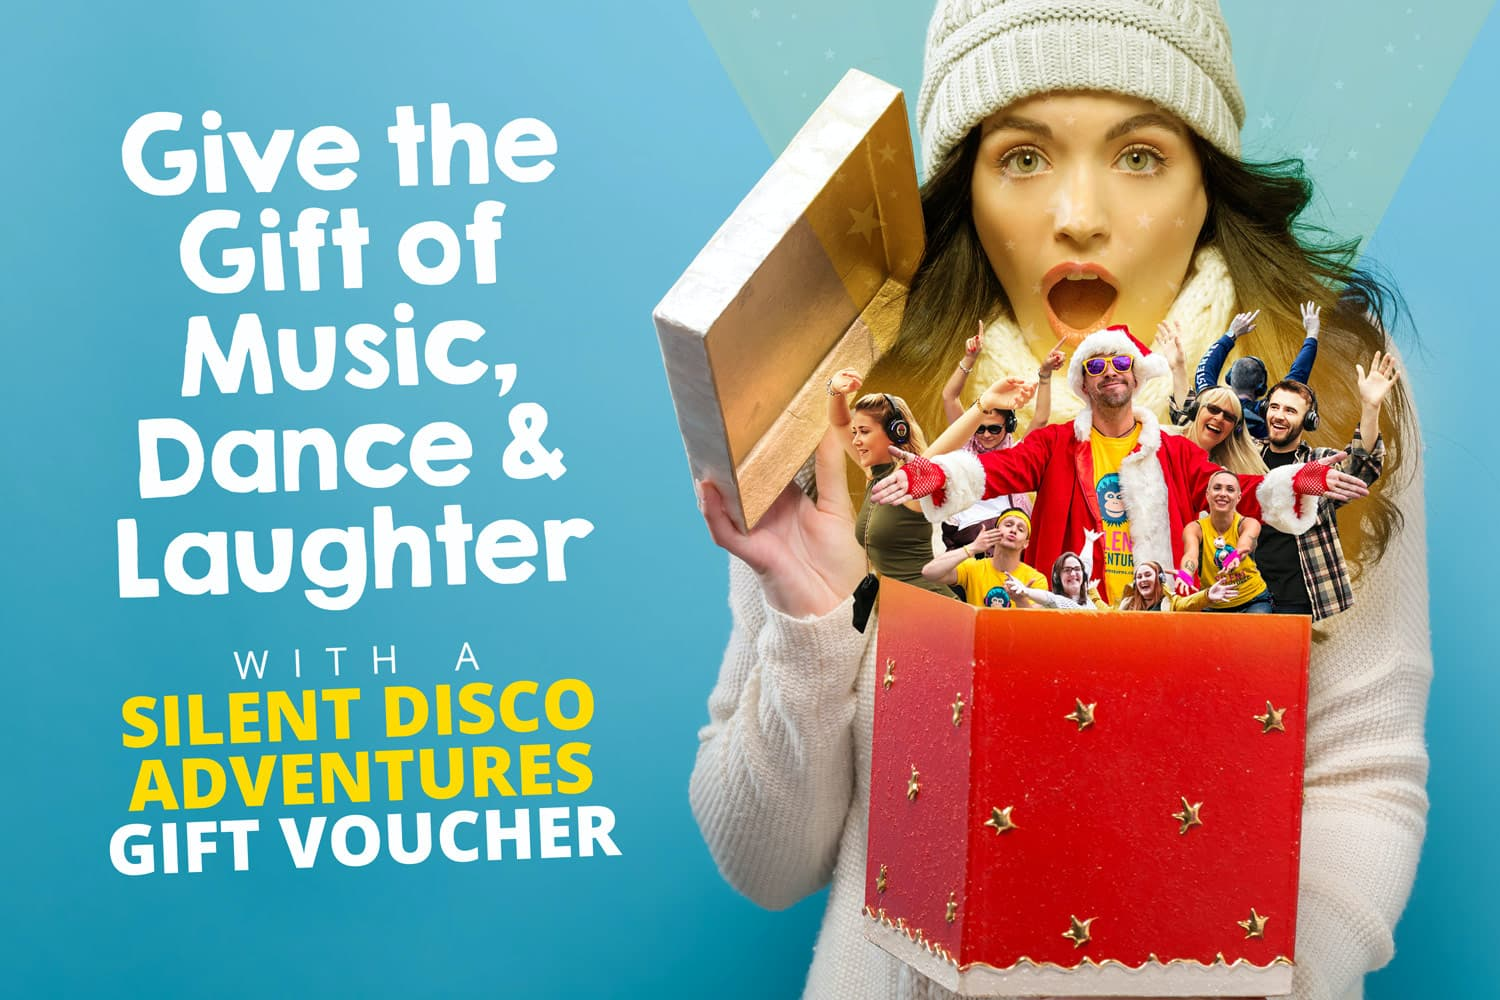 Dublin Silent Disco Walking Tours Gift Vouchers